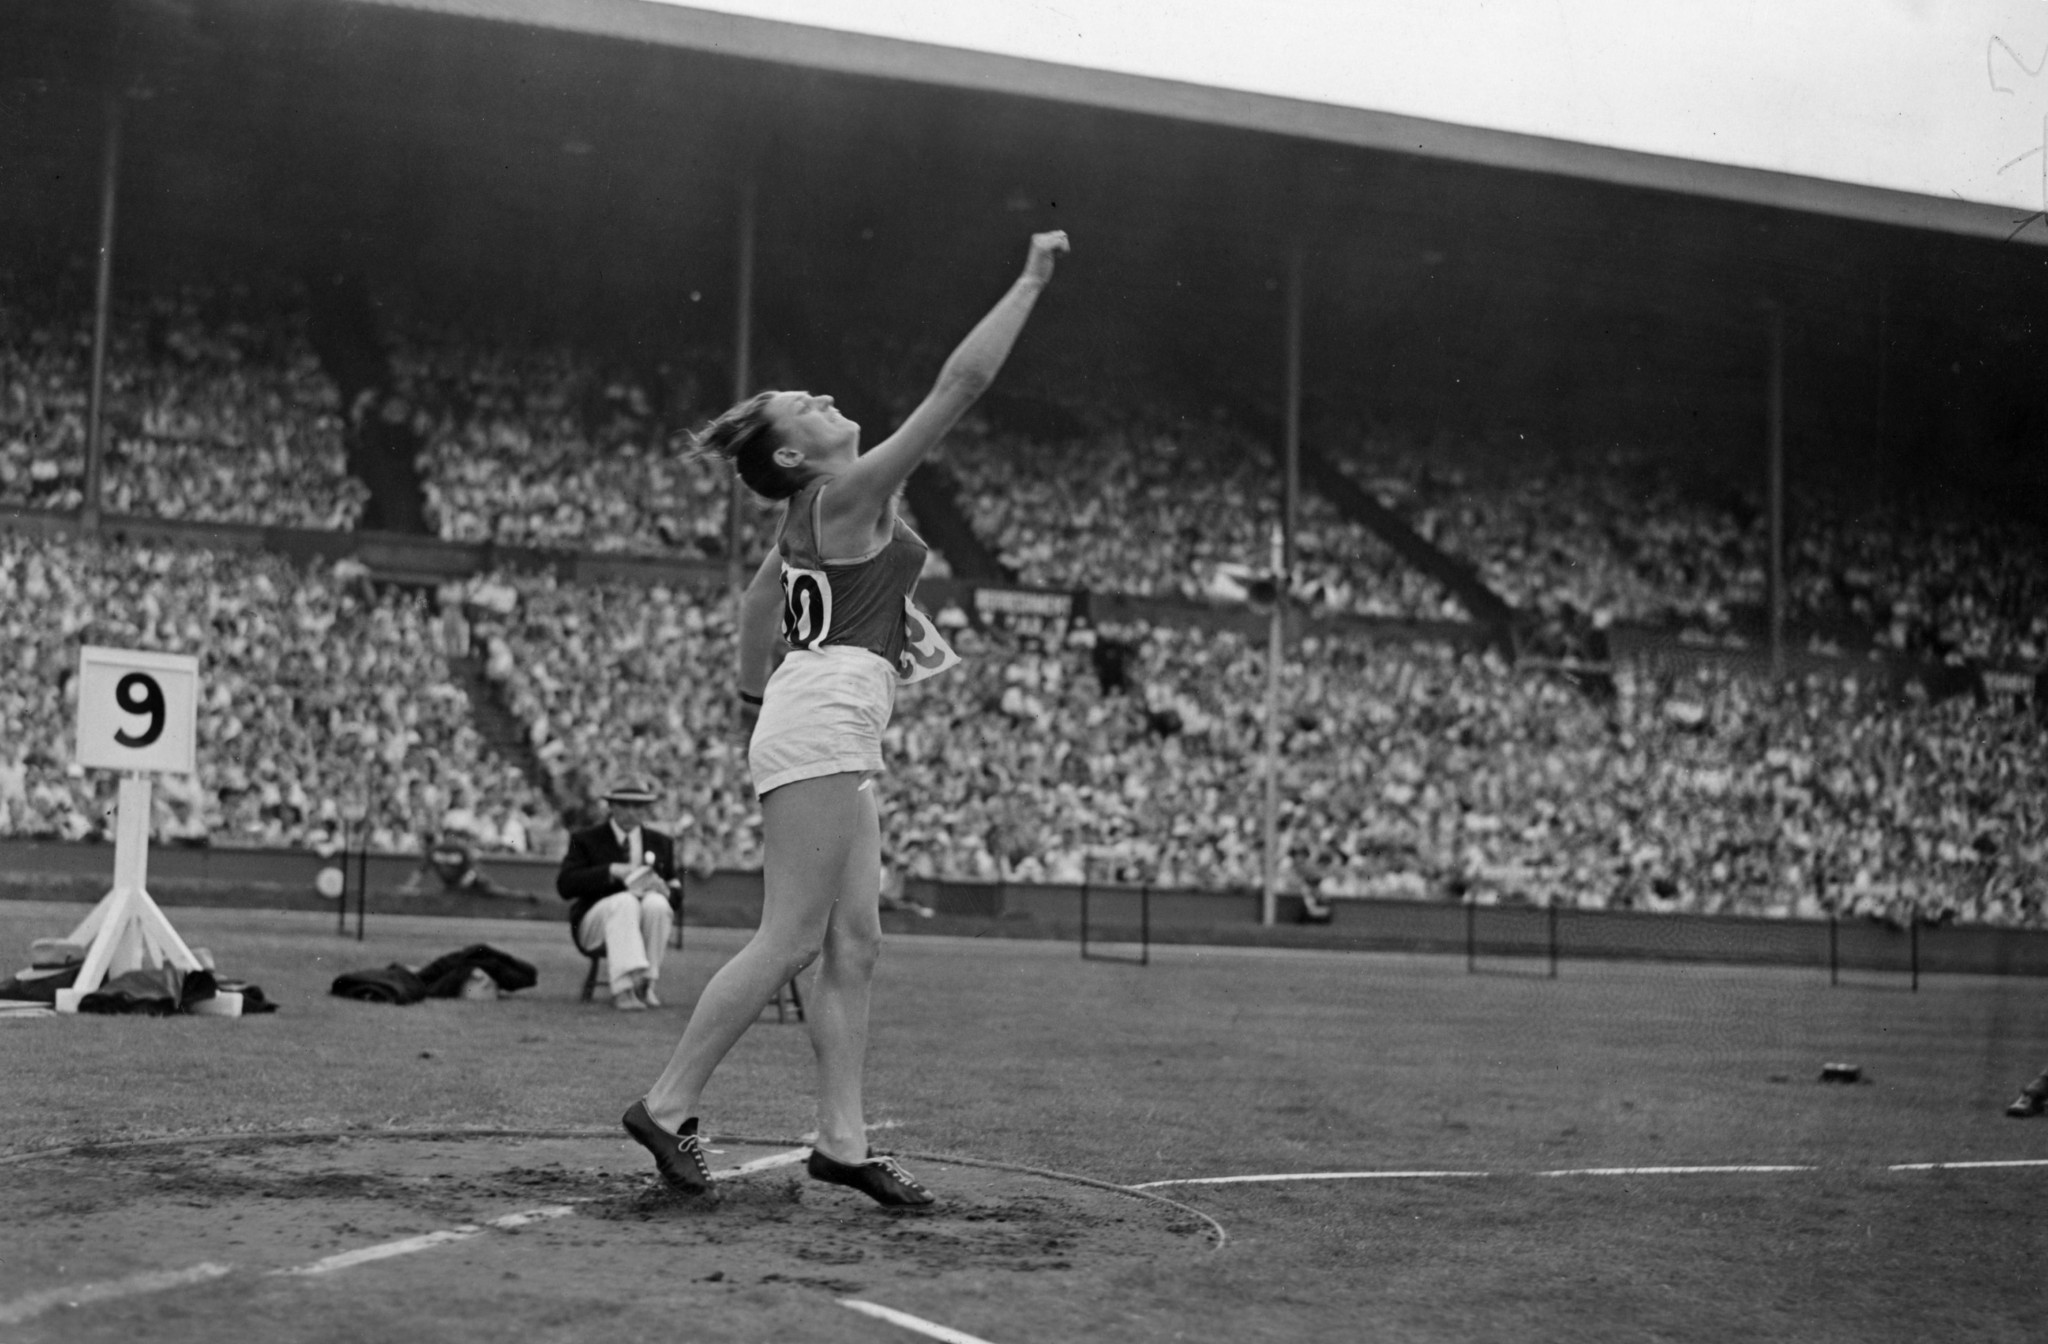 Charlotte 'Lotte' Haidegger throws Discus to win Gold at the 1949 Summer International University Sports Week. ©Topical Press Agency/Getty Images